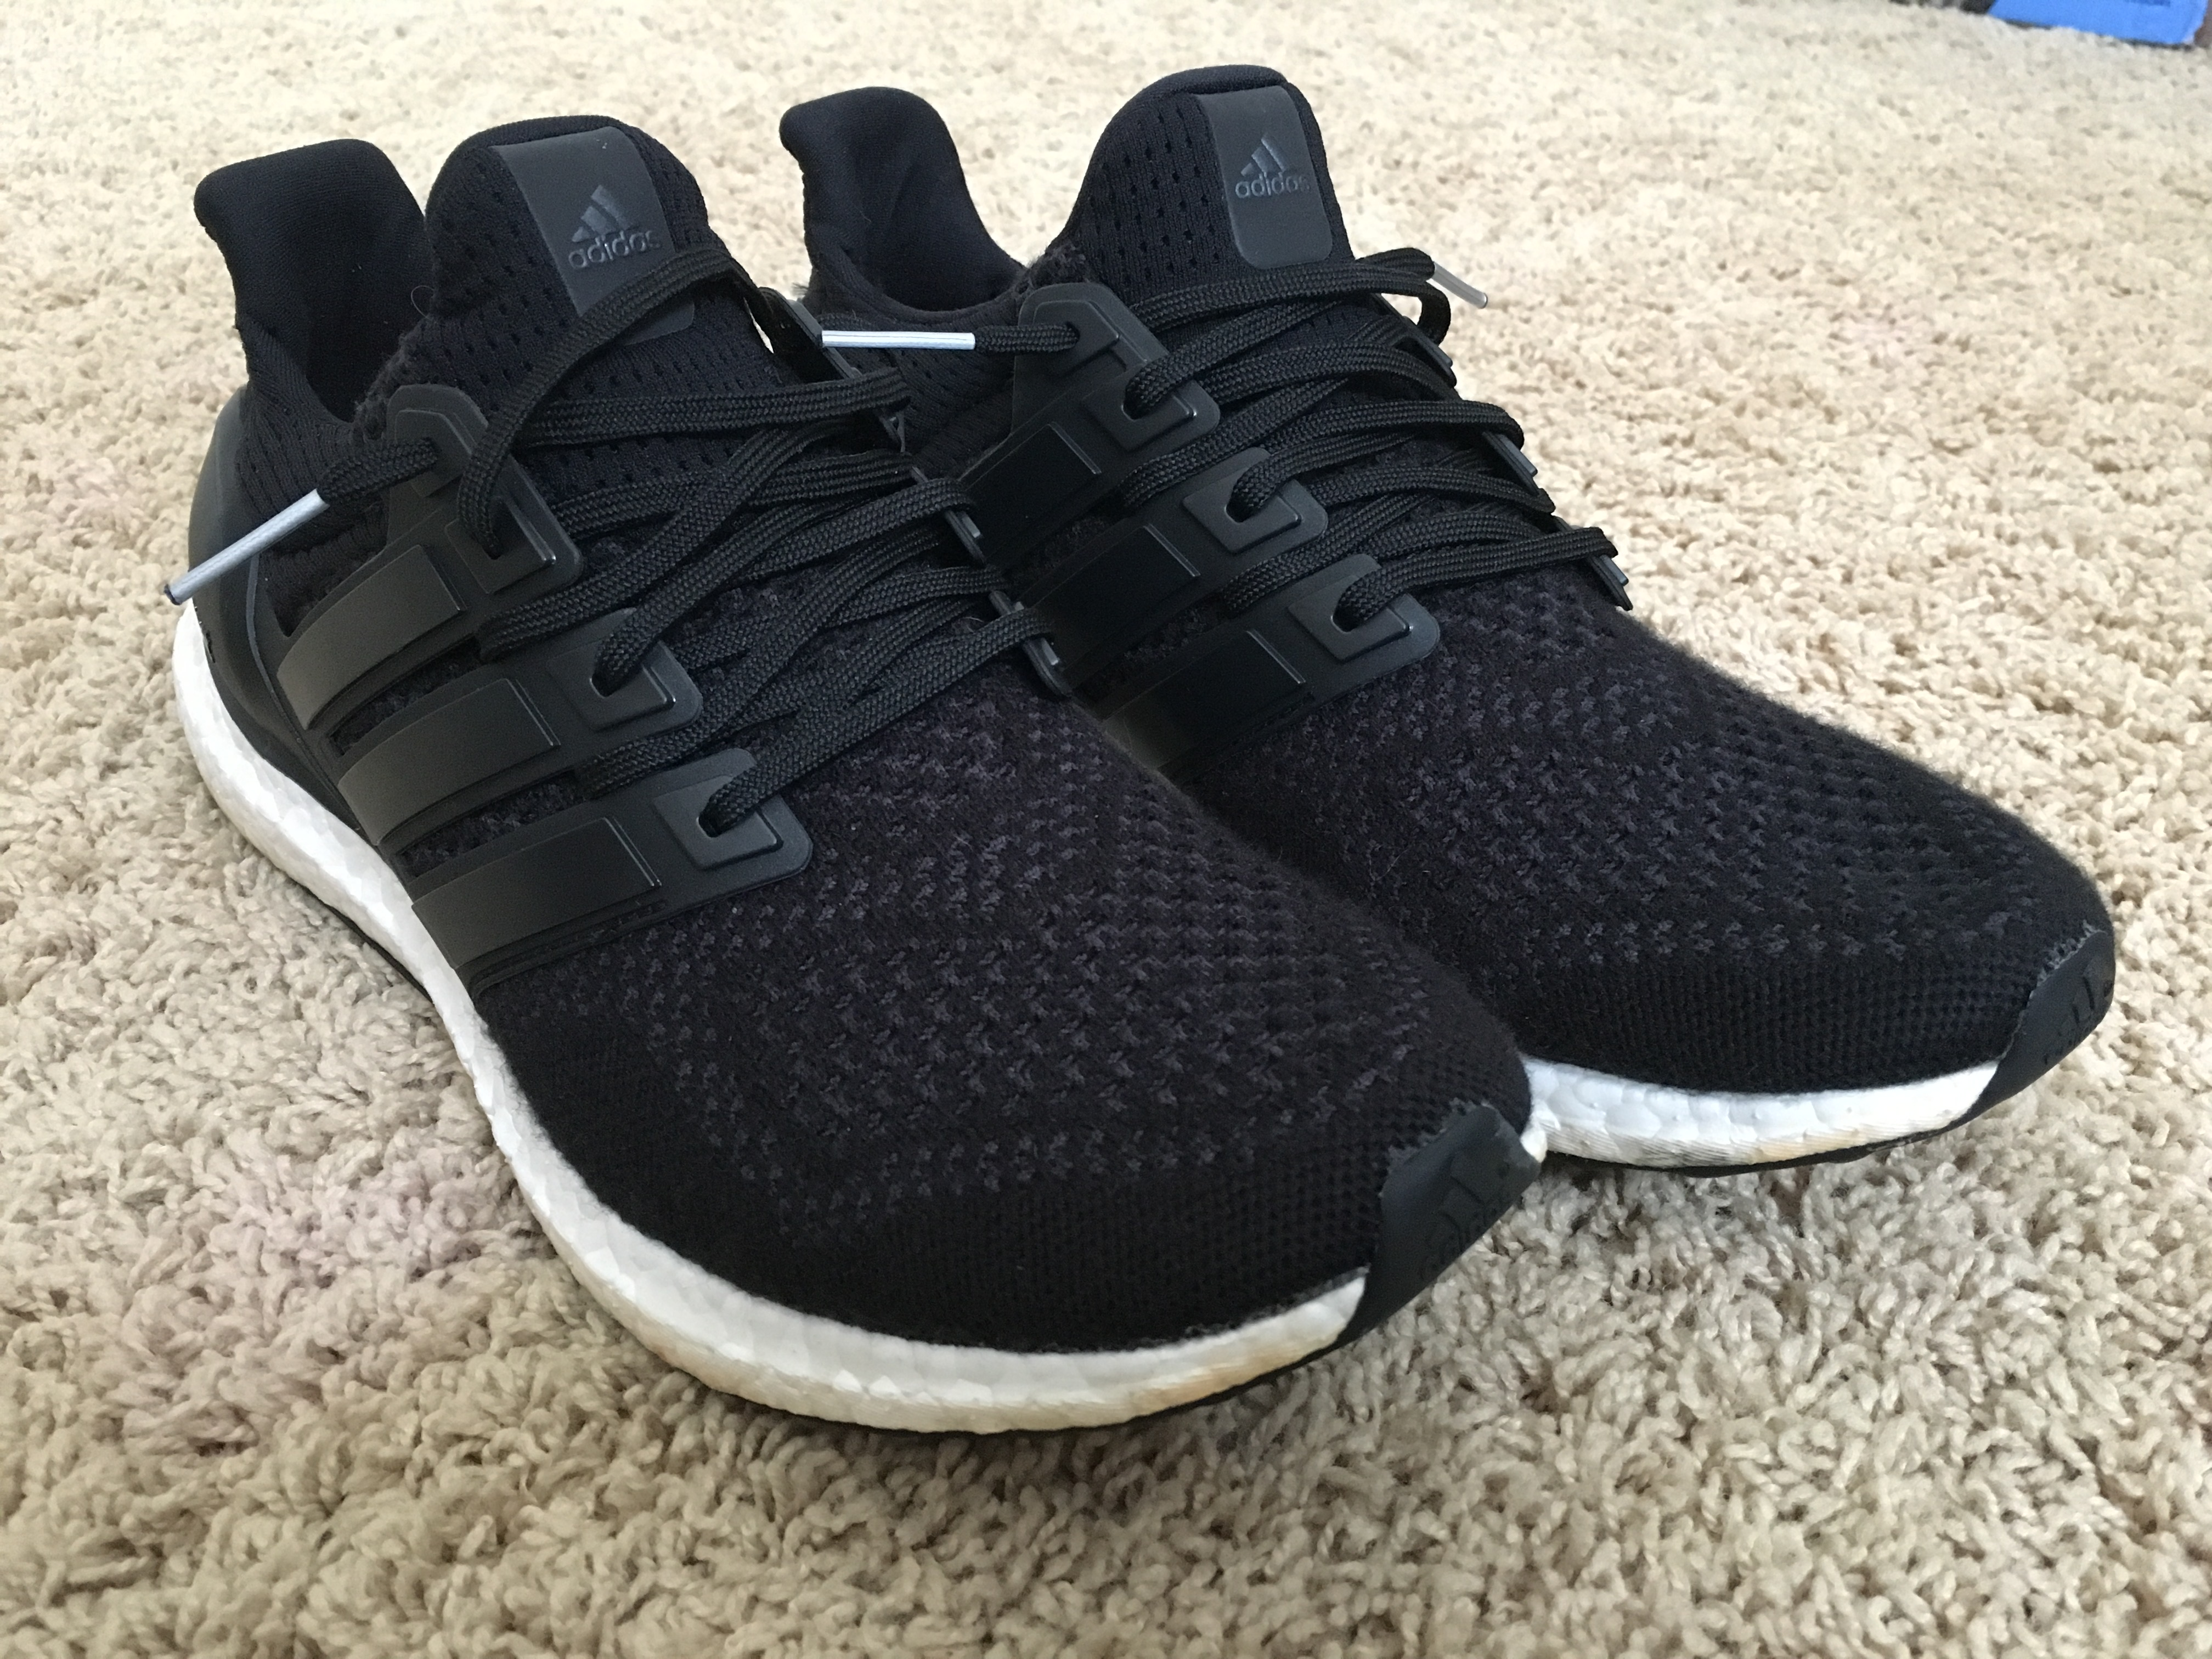 fe83644c761c3 Adidas Ultra Boost Core Black 1.0 Size 10.5 - for Sale - Grailed